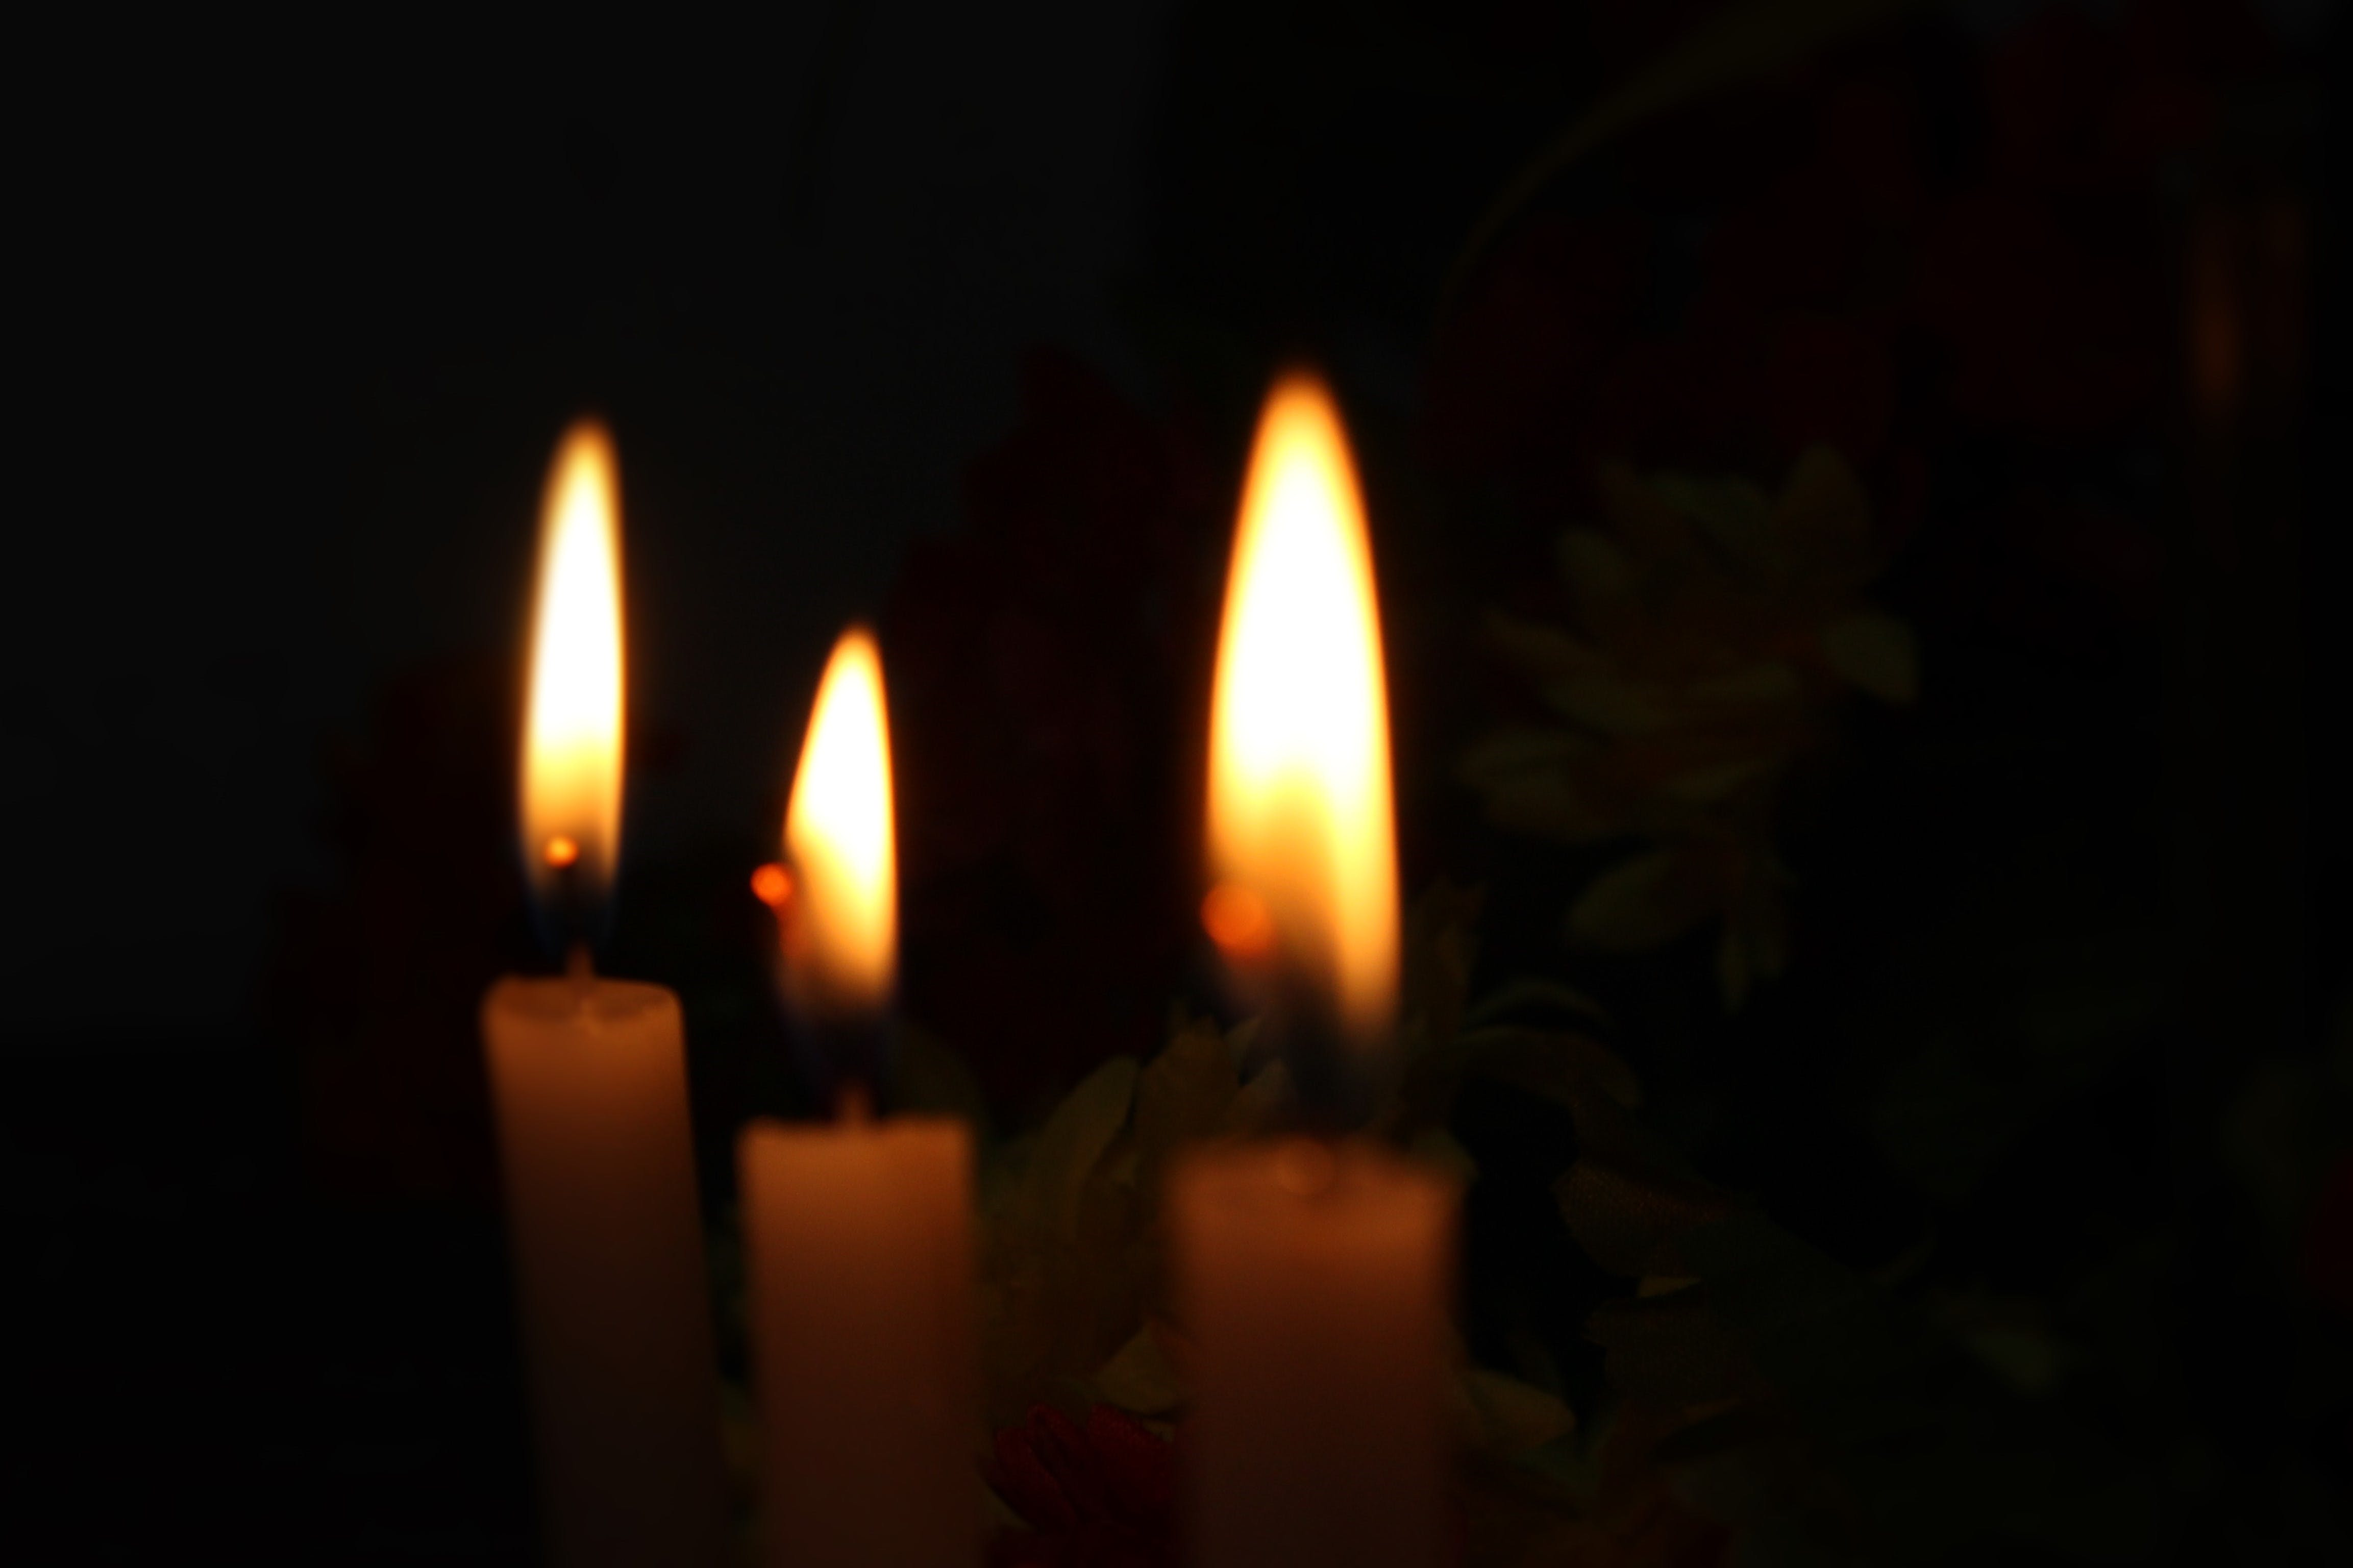 Free stock photo of black, candle light background, Candlelights, candles